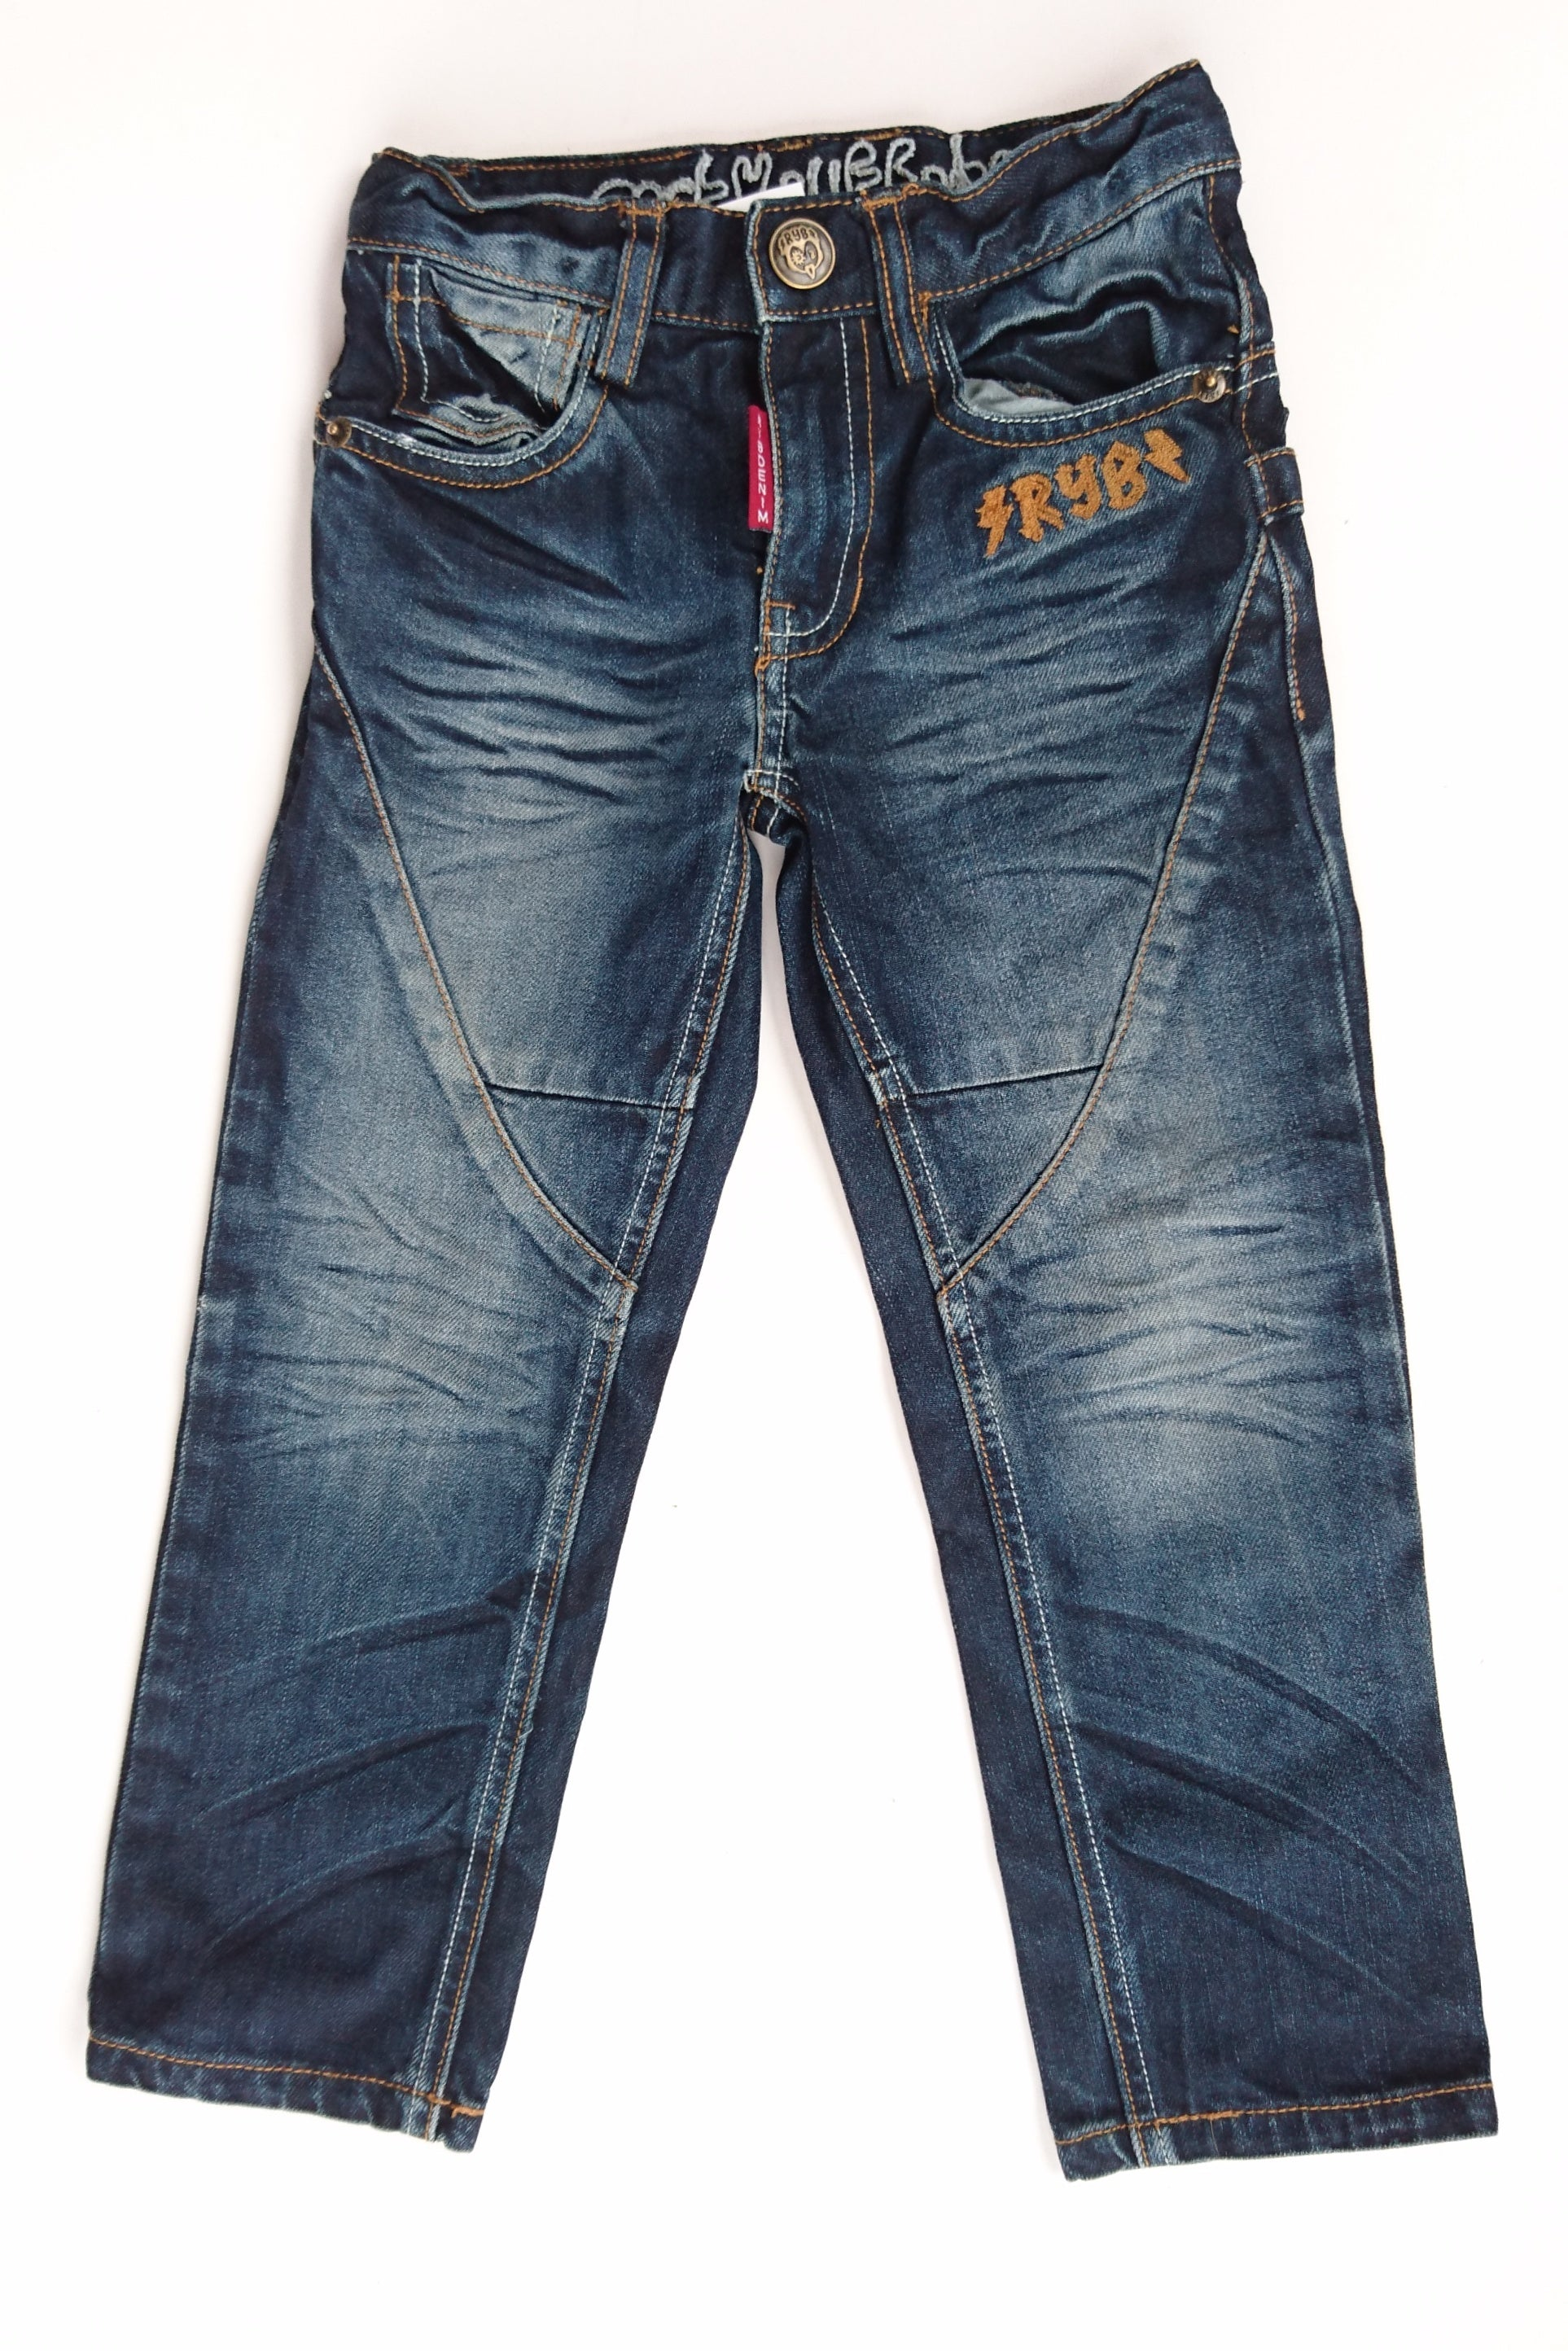 Rock Your Baby Jeans size 4